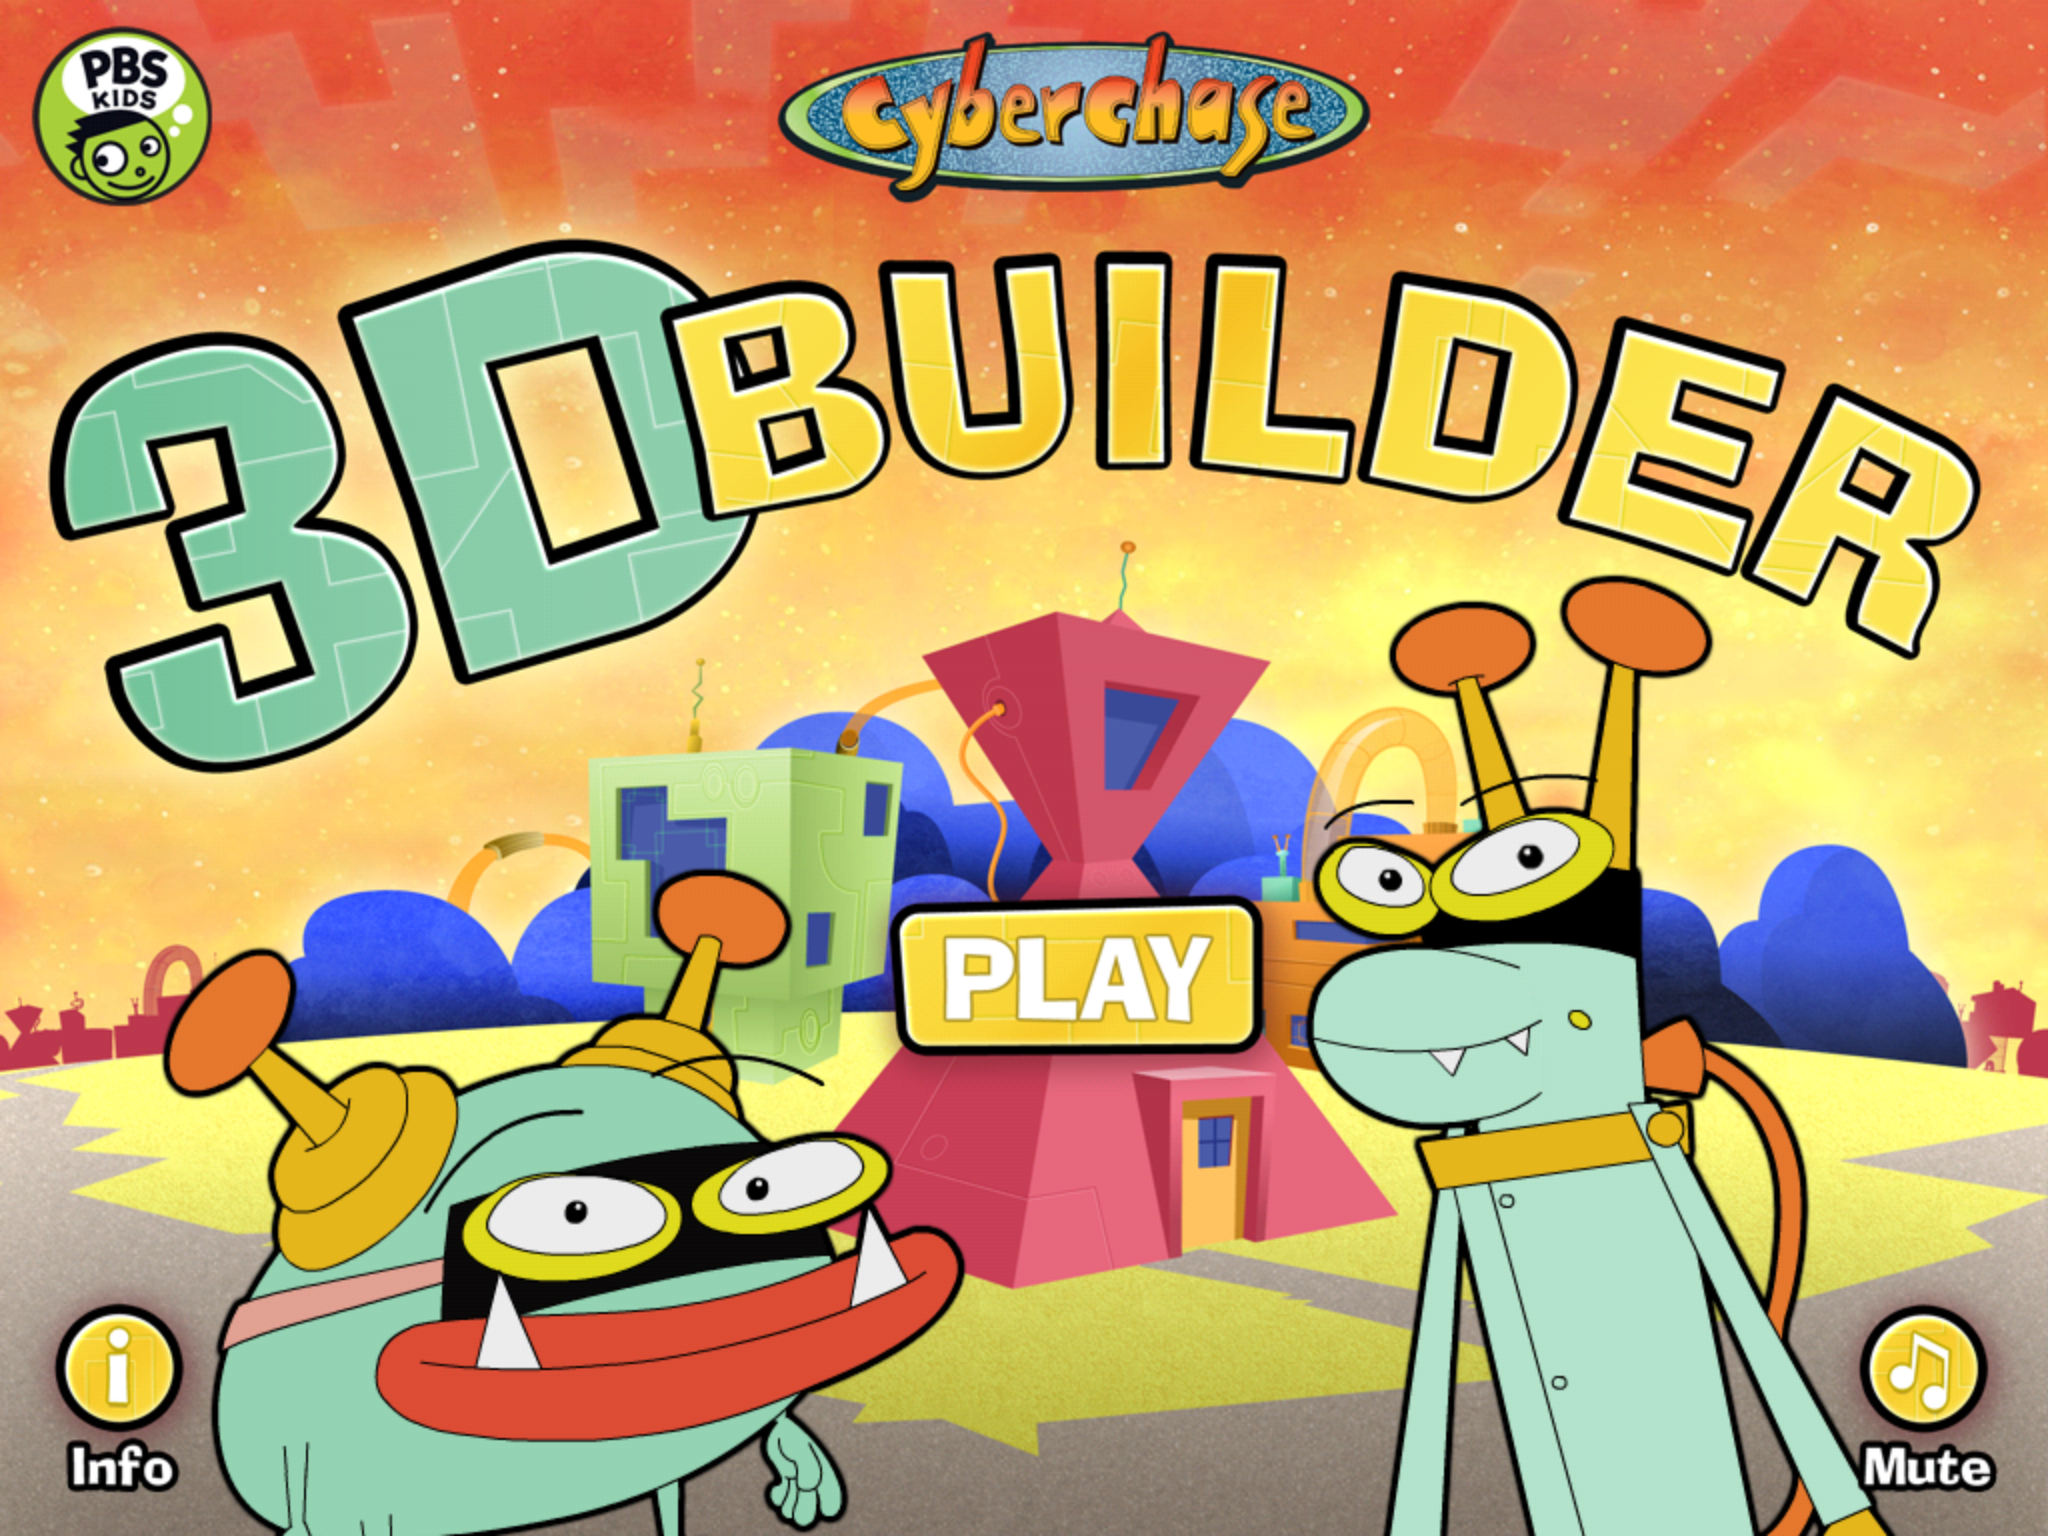 Cyberchase 3D Builder screenshot.